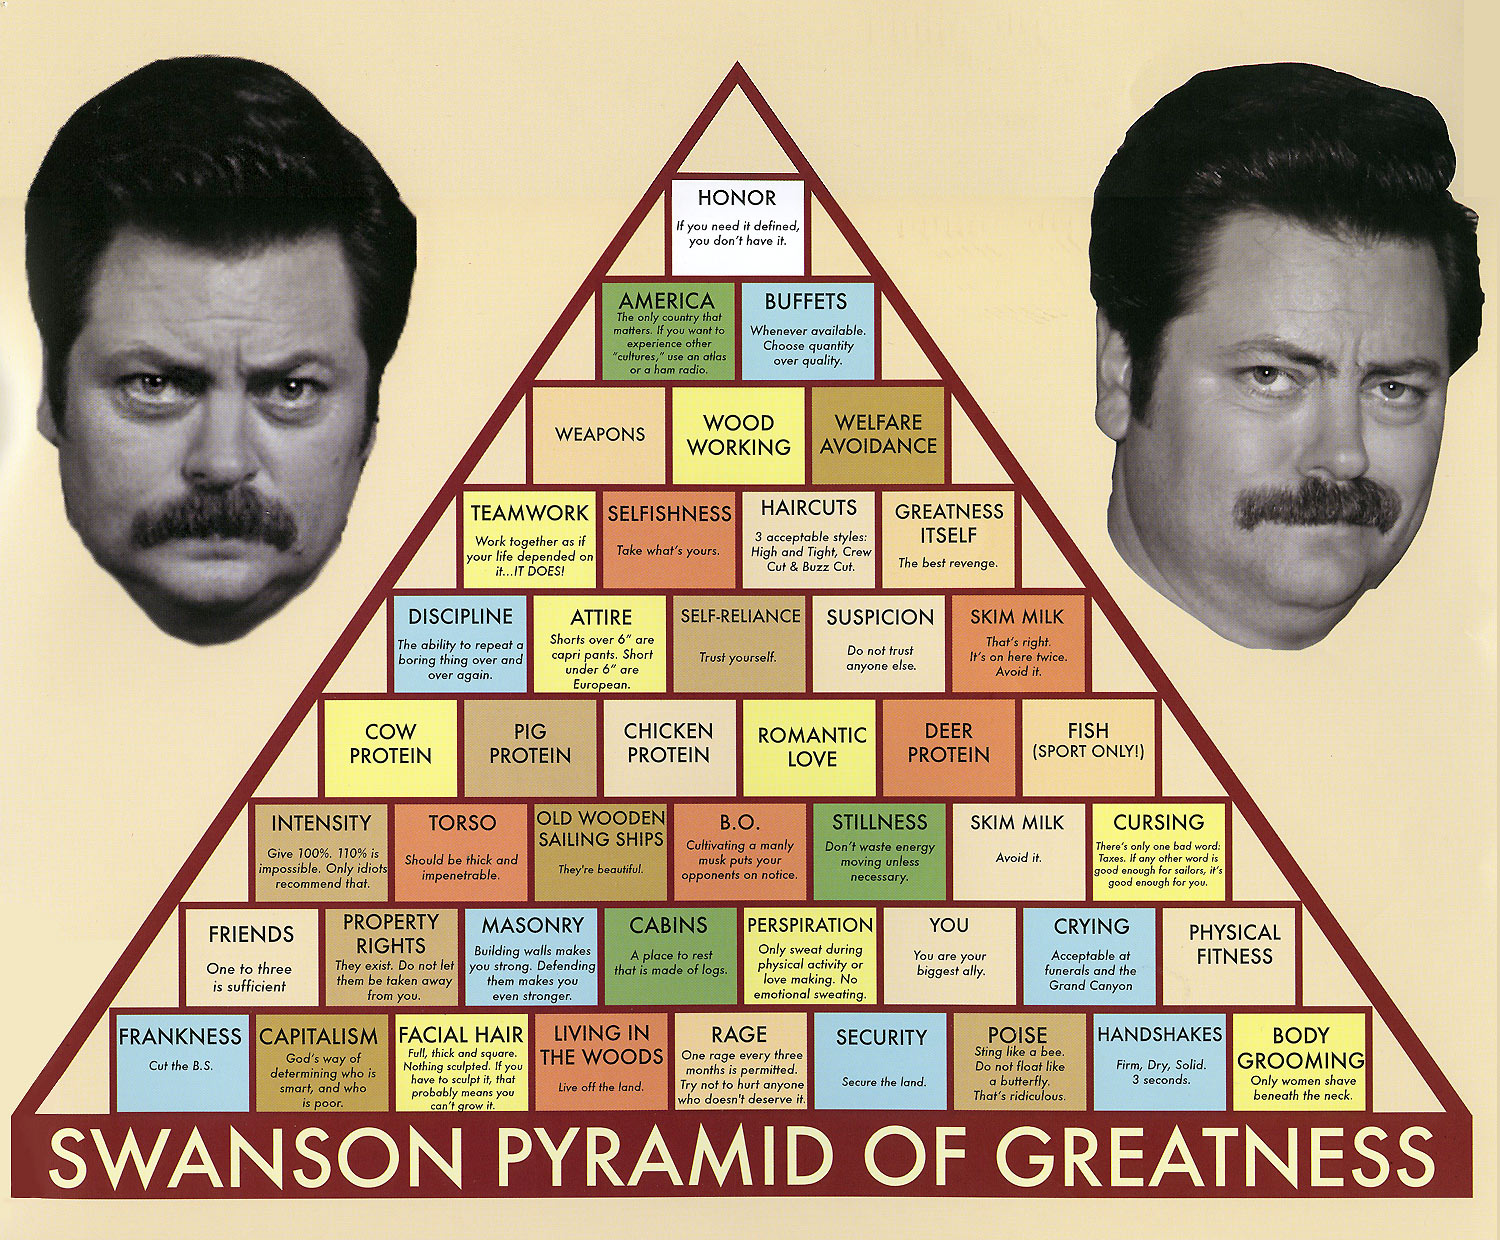 la virilite chez les types - Page 2 Swanson_Pyramid_of_Greatness